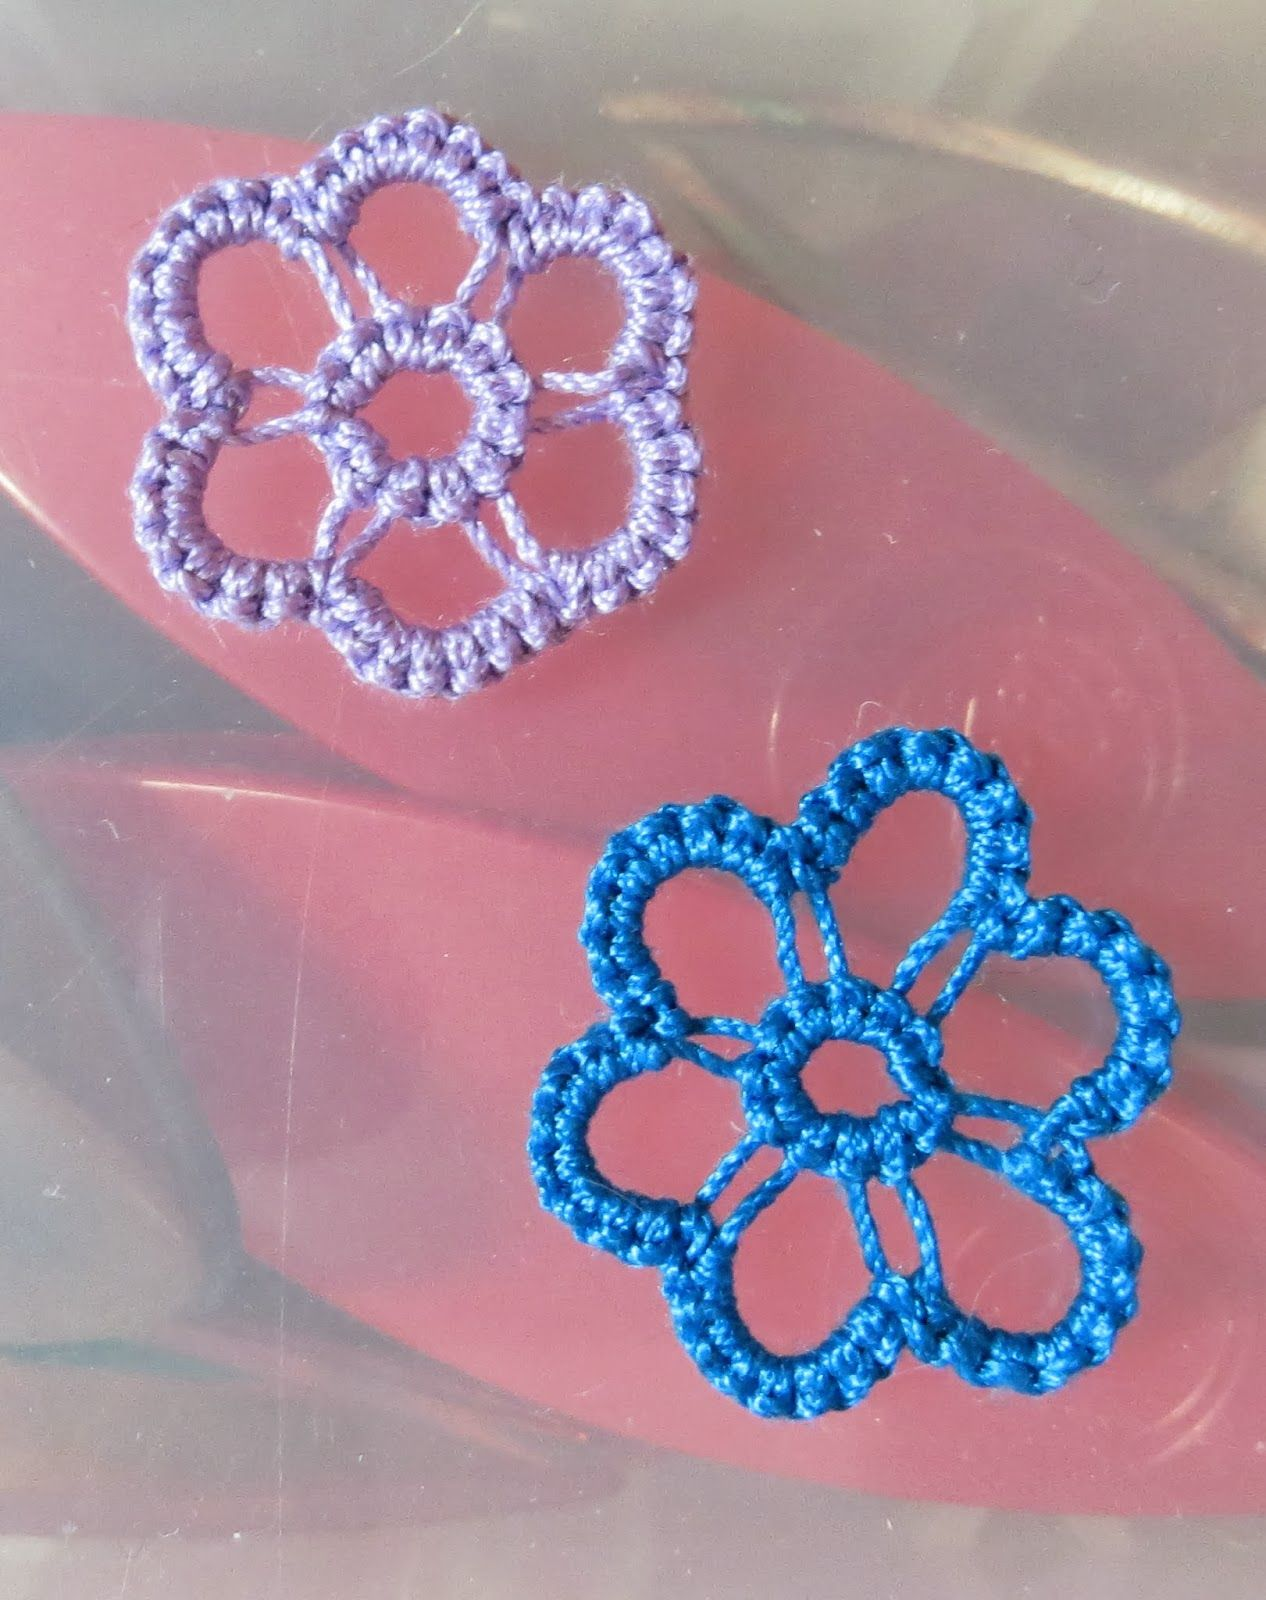 Stitches of Life II: tatting. Nice way to use up leftover bits of thread- very pretty.